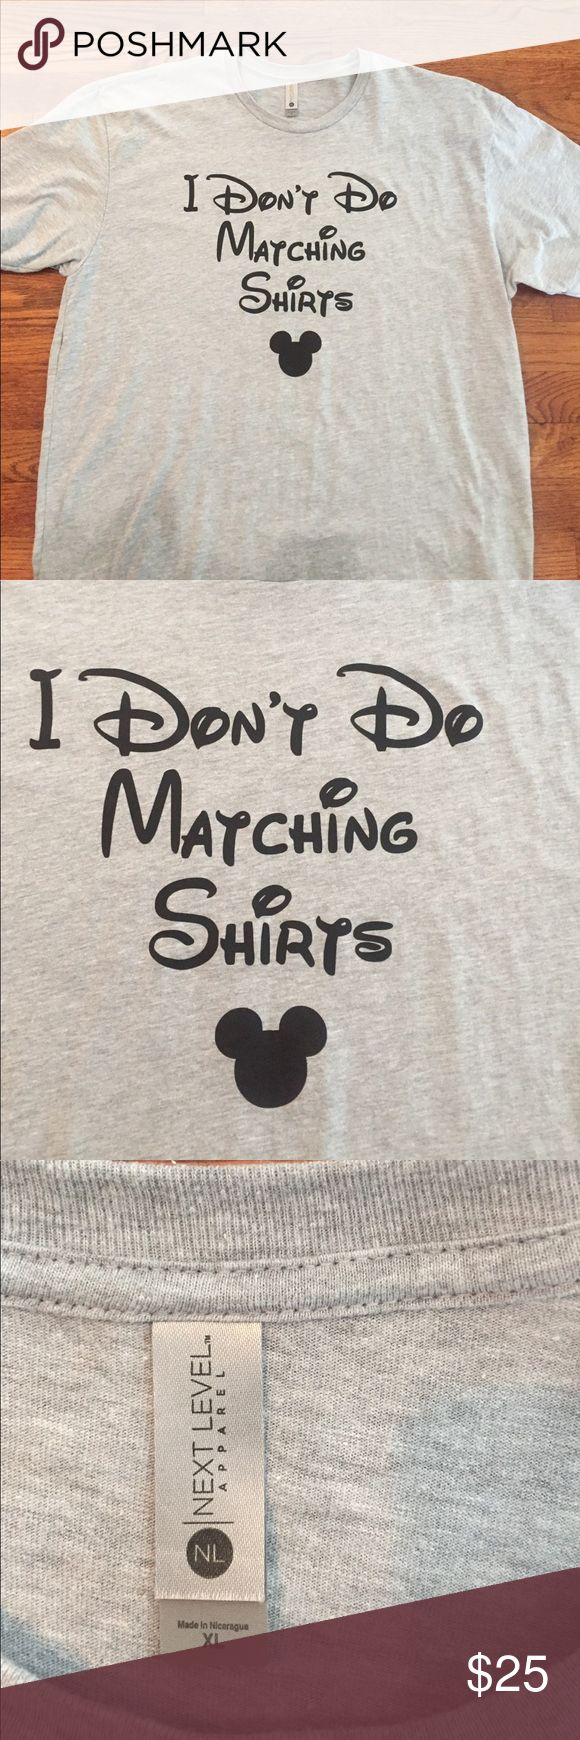 """""""I Don't Do Matching Shirts"""" Disney Font Tee """"I Don't Do Matching Shirts"""" tee with Disney font.  Perfect for the guy in your family that does want to match the group.  Worn once on our Disney cruise, washed delicates, hung to dry.  Size XL, super soft cotton.  Never dried! Disney Shirts Tees - Short Sleeve"""